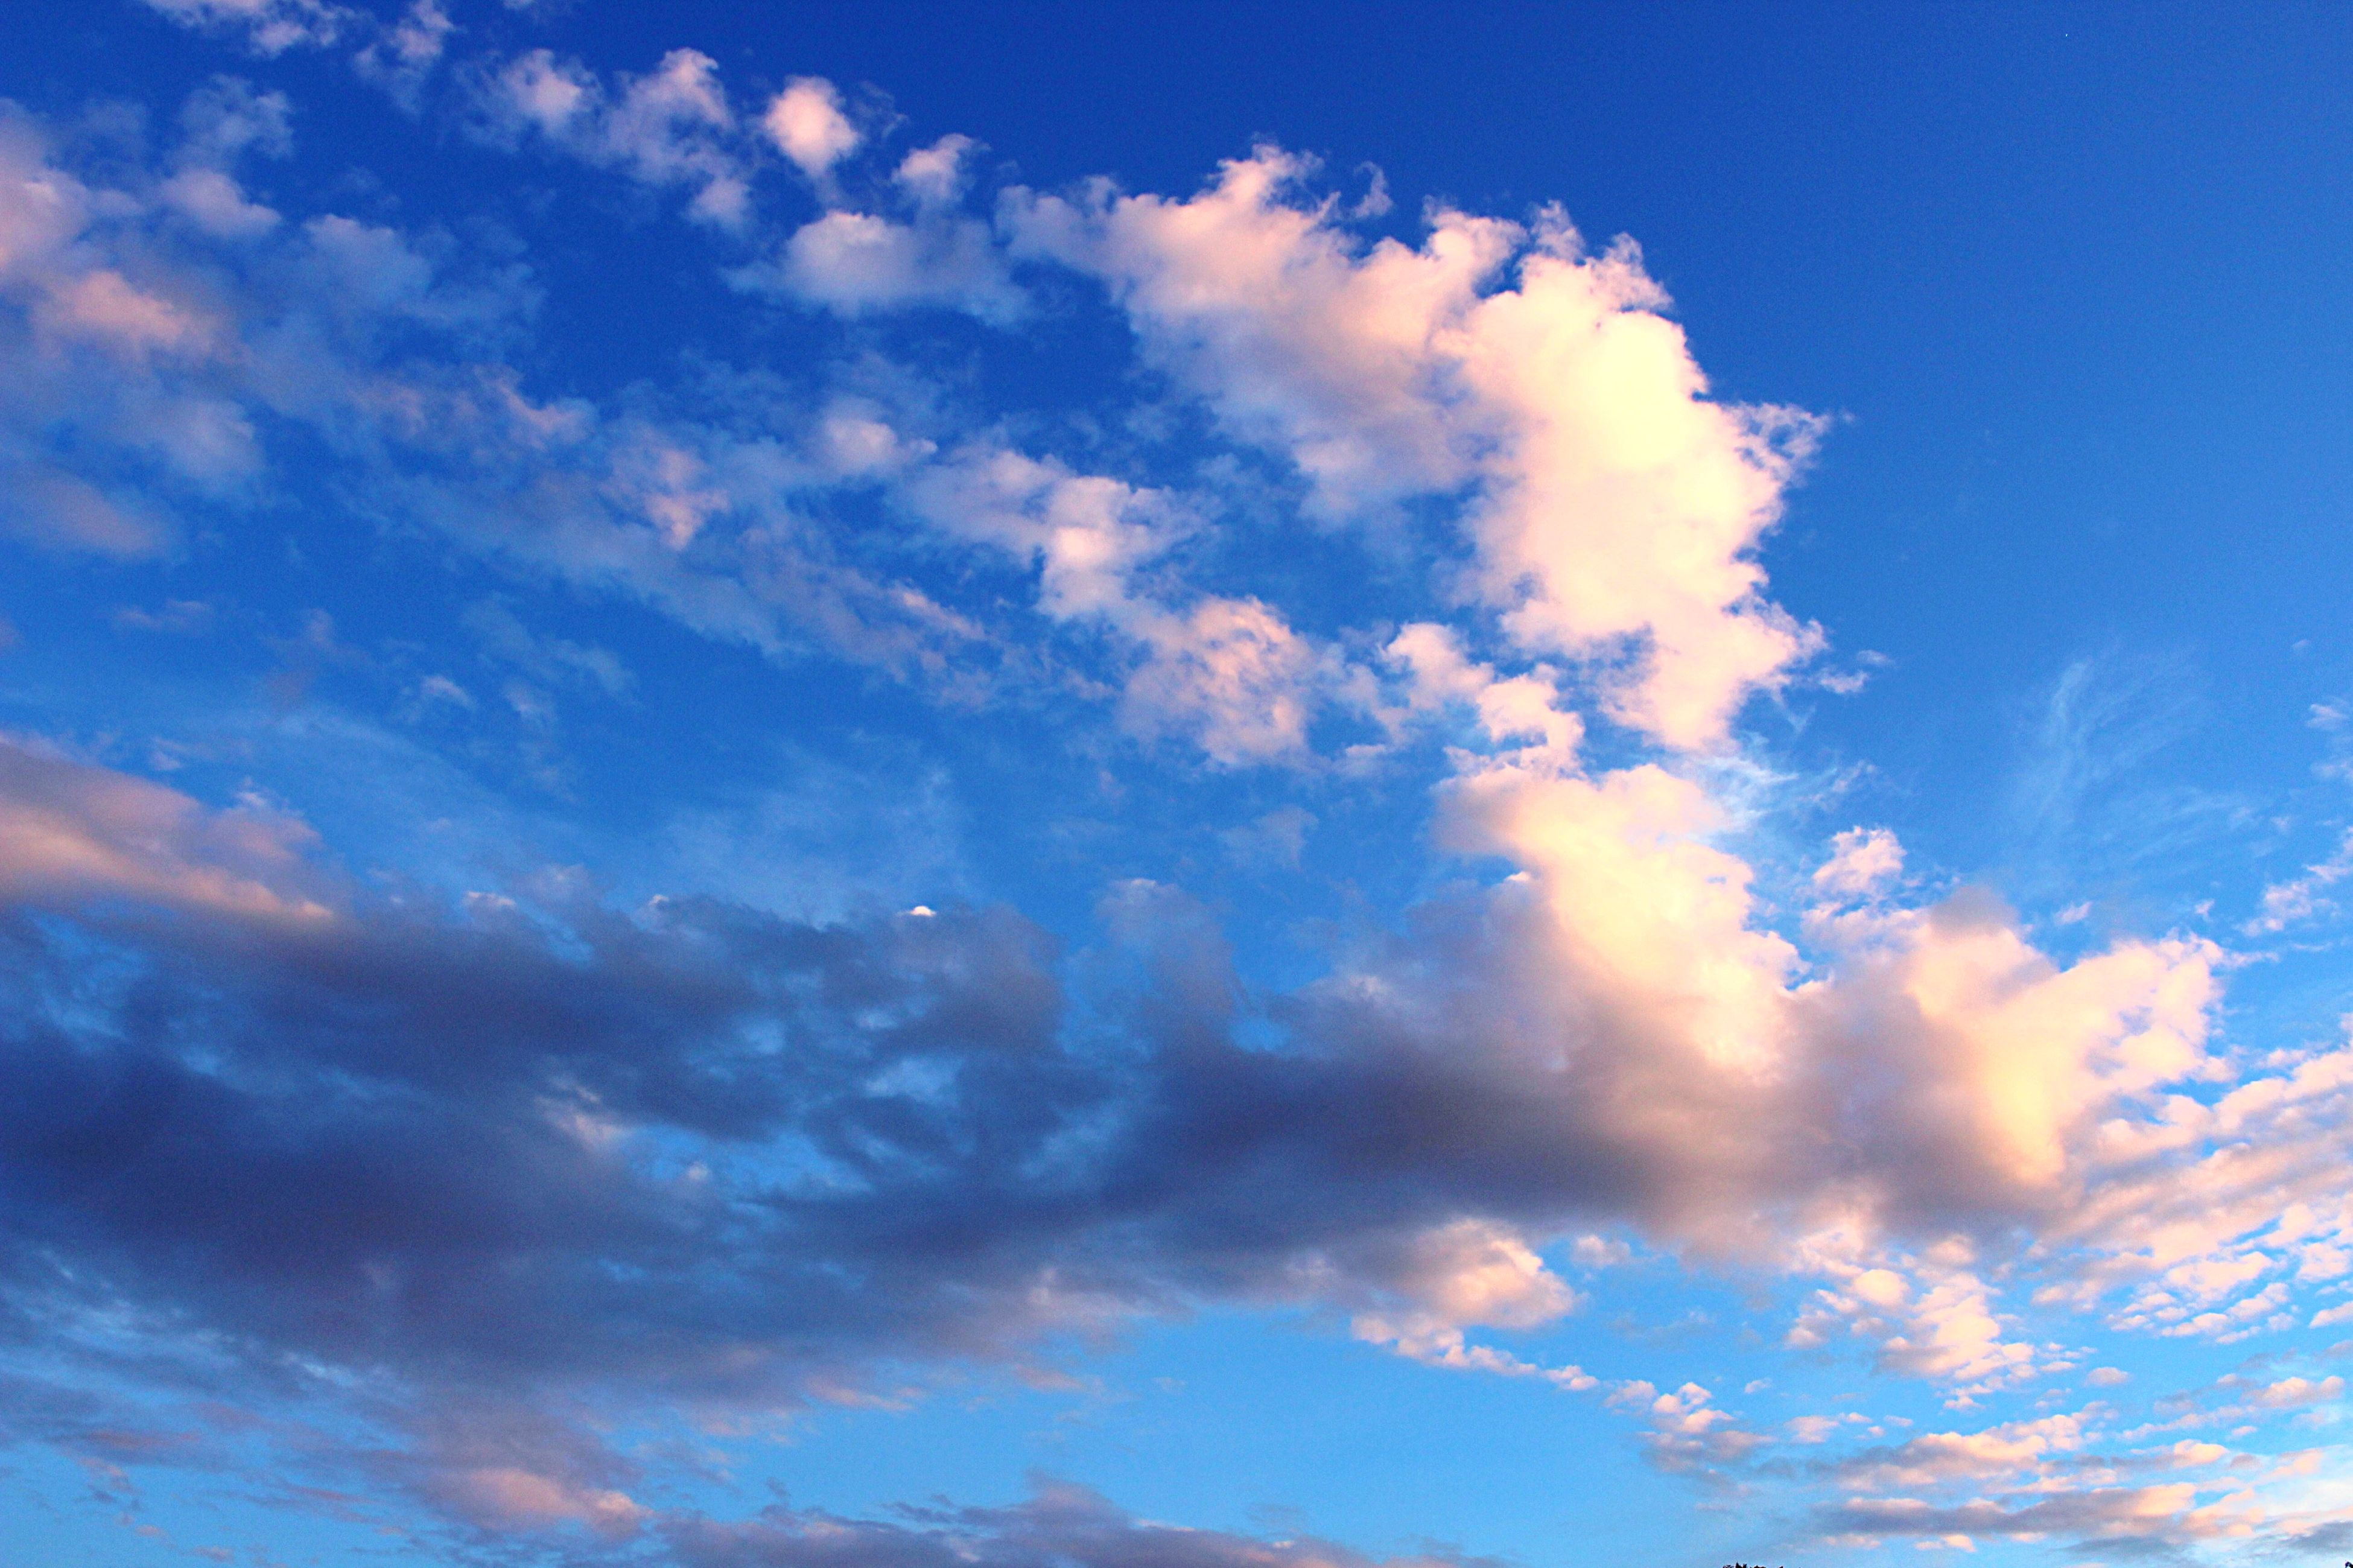 sky, blue, low angle view, cloud - sky, beauty in nature, tranquility, scenics, sky only, tranquil scene, nature, cloud, cloudscape, cloudy, backgrounds, idyllic, majestic, full frame, outdoors, no people, sunlight